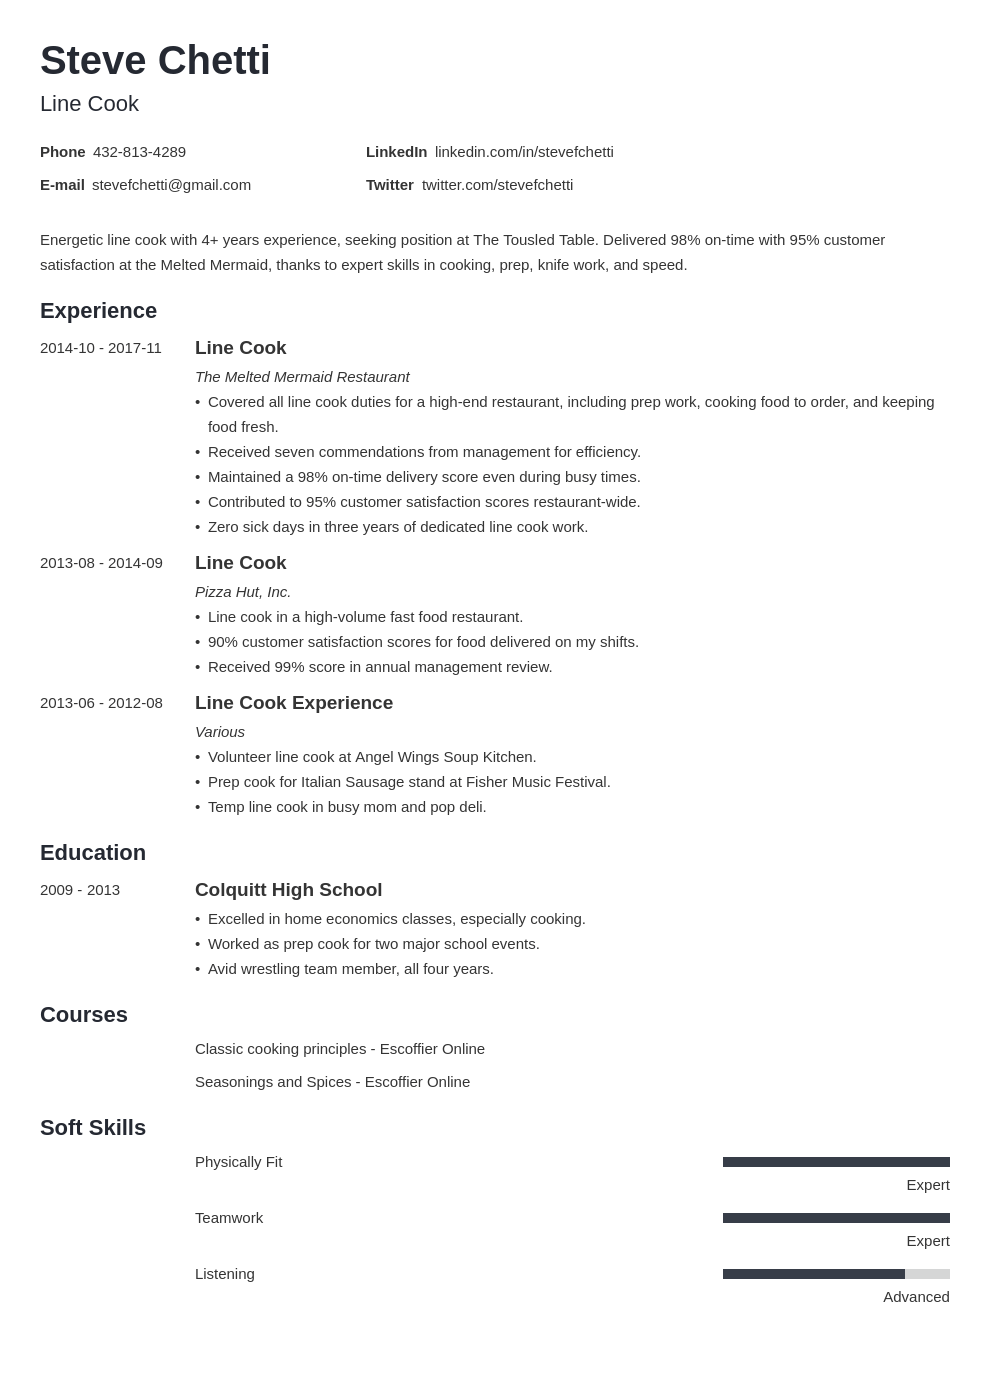 line cook resume example template minimo in 2020 Job